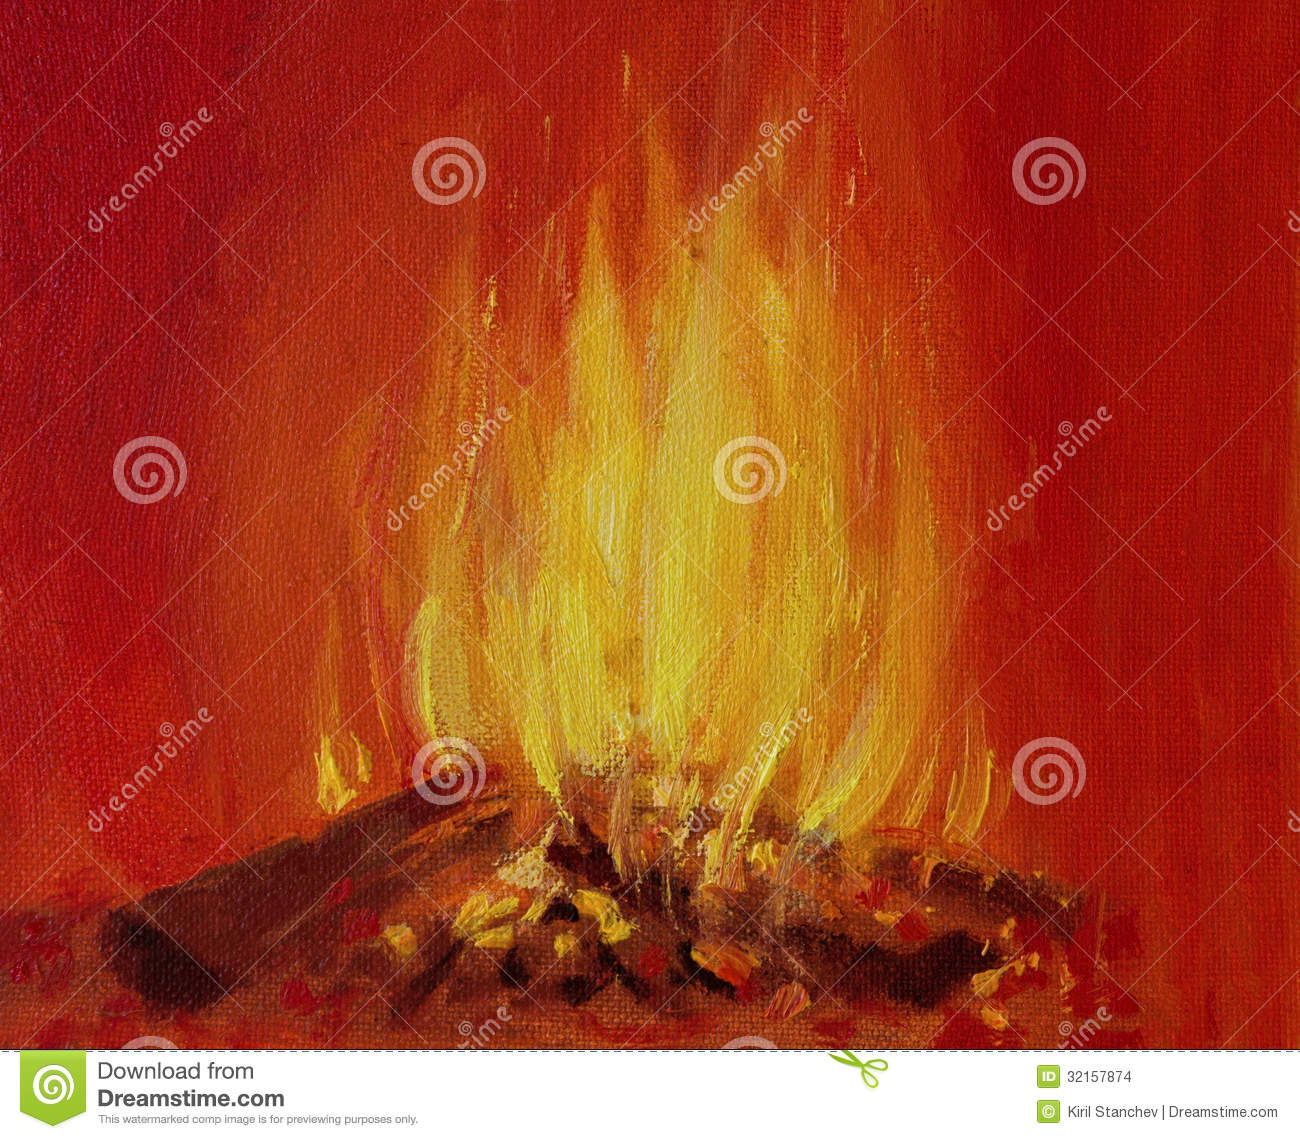 Burning Fire In A Fireplace Stock Images - Image: 32157874